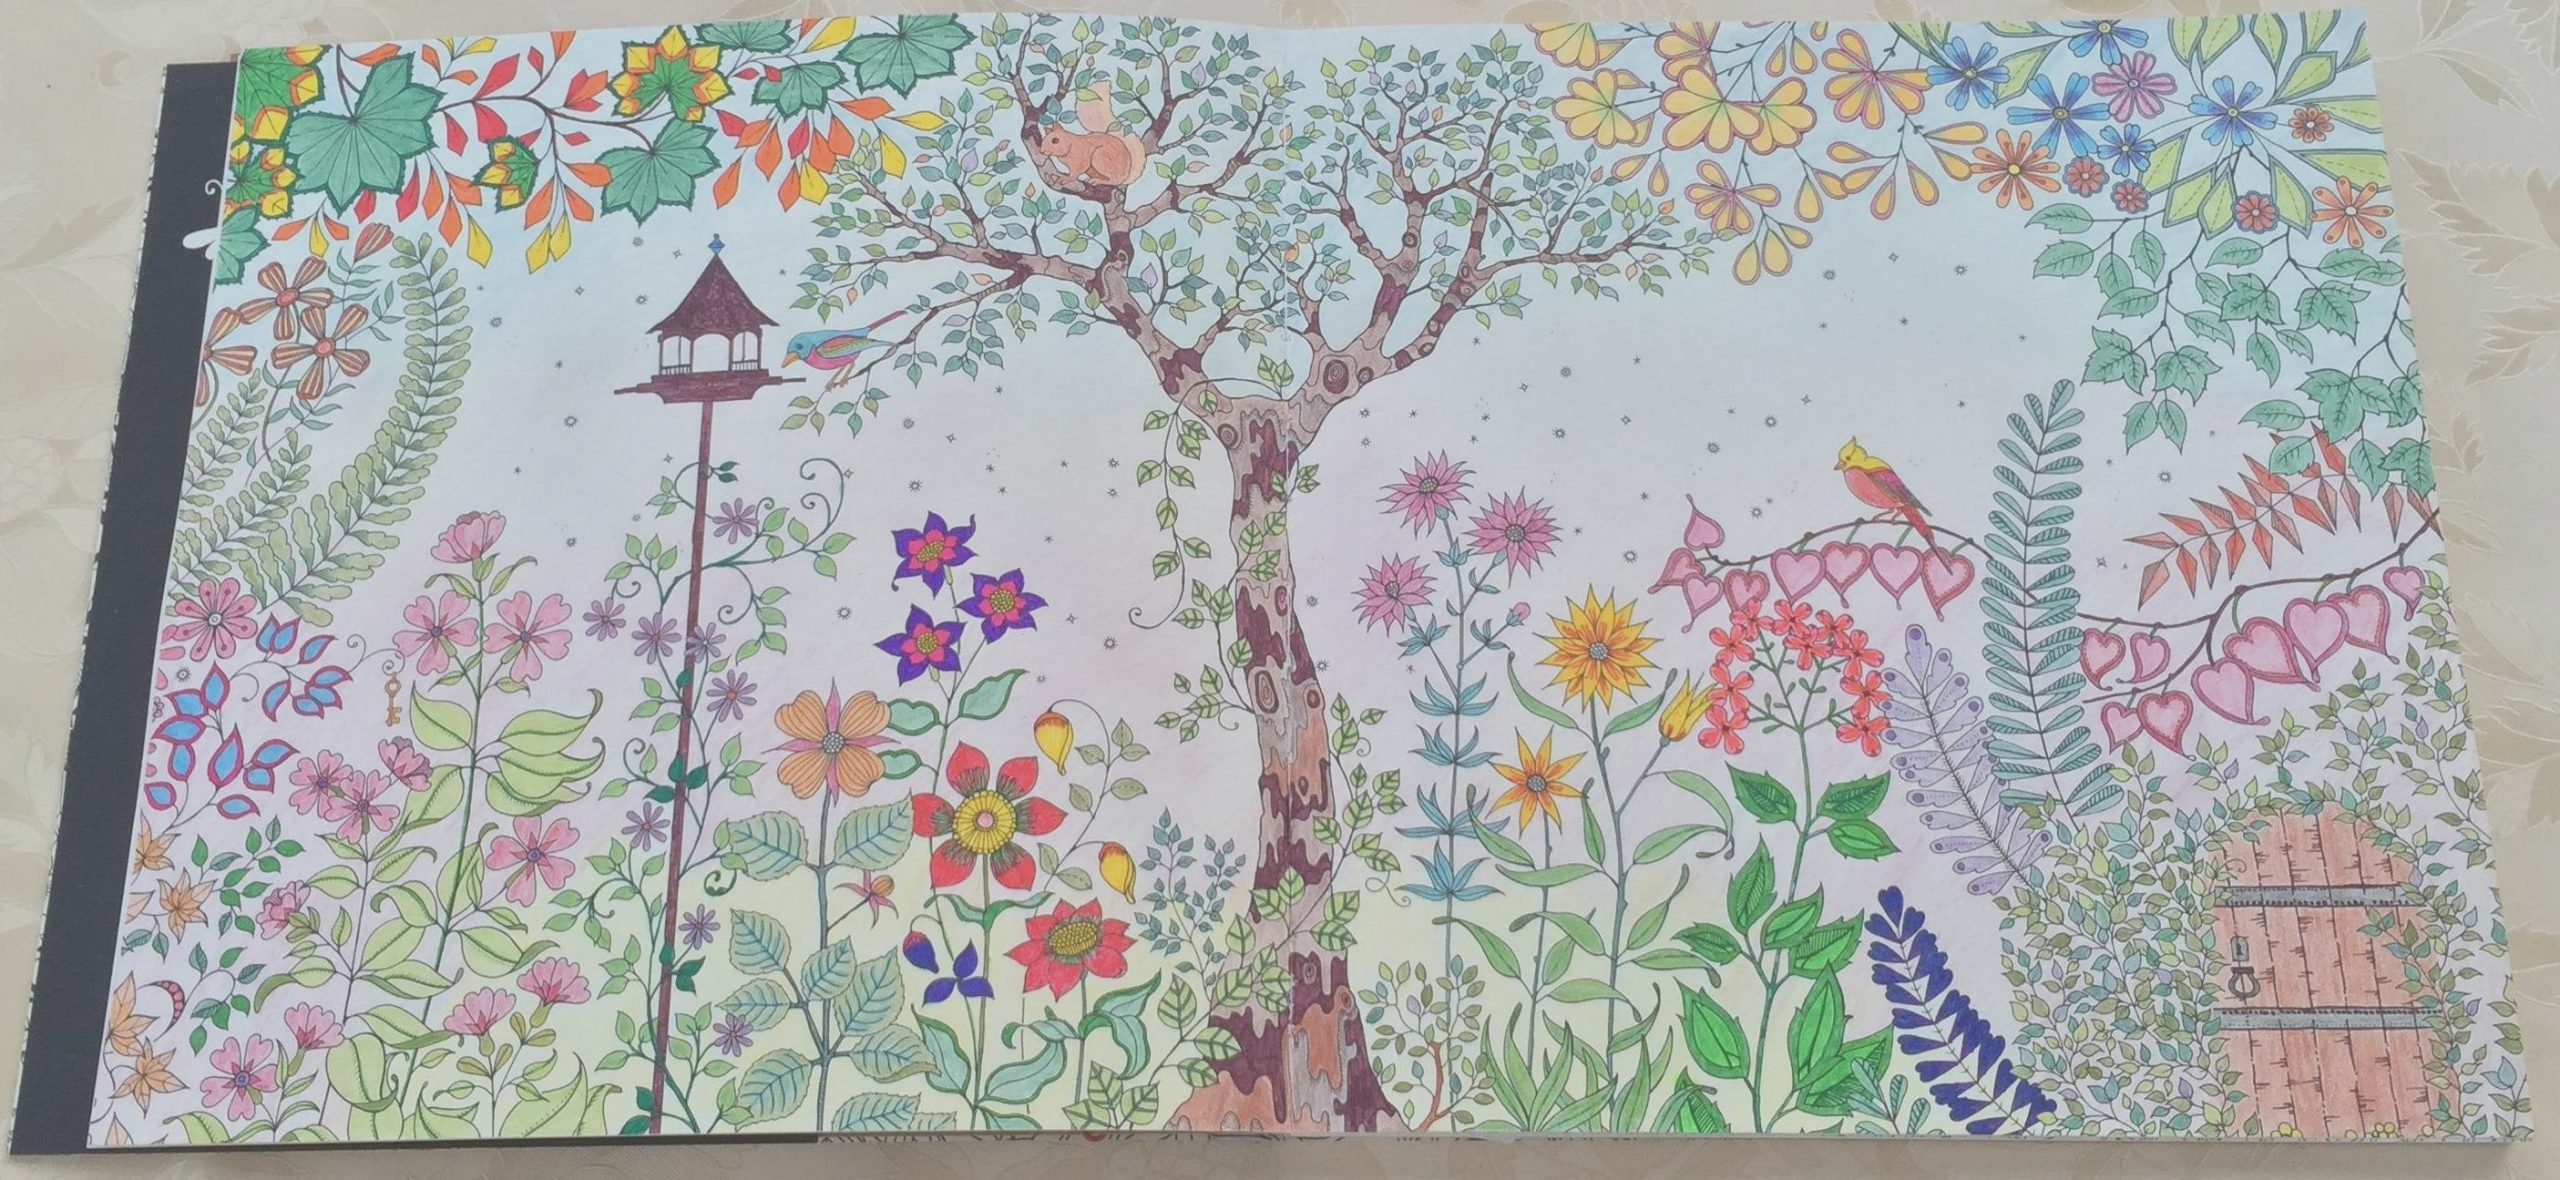 finally done with my first page of secret garden